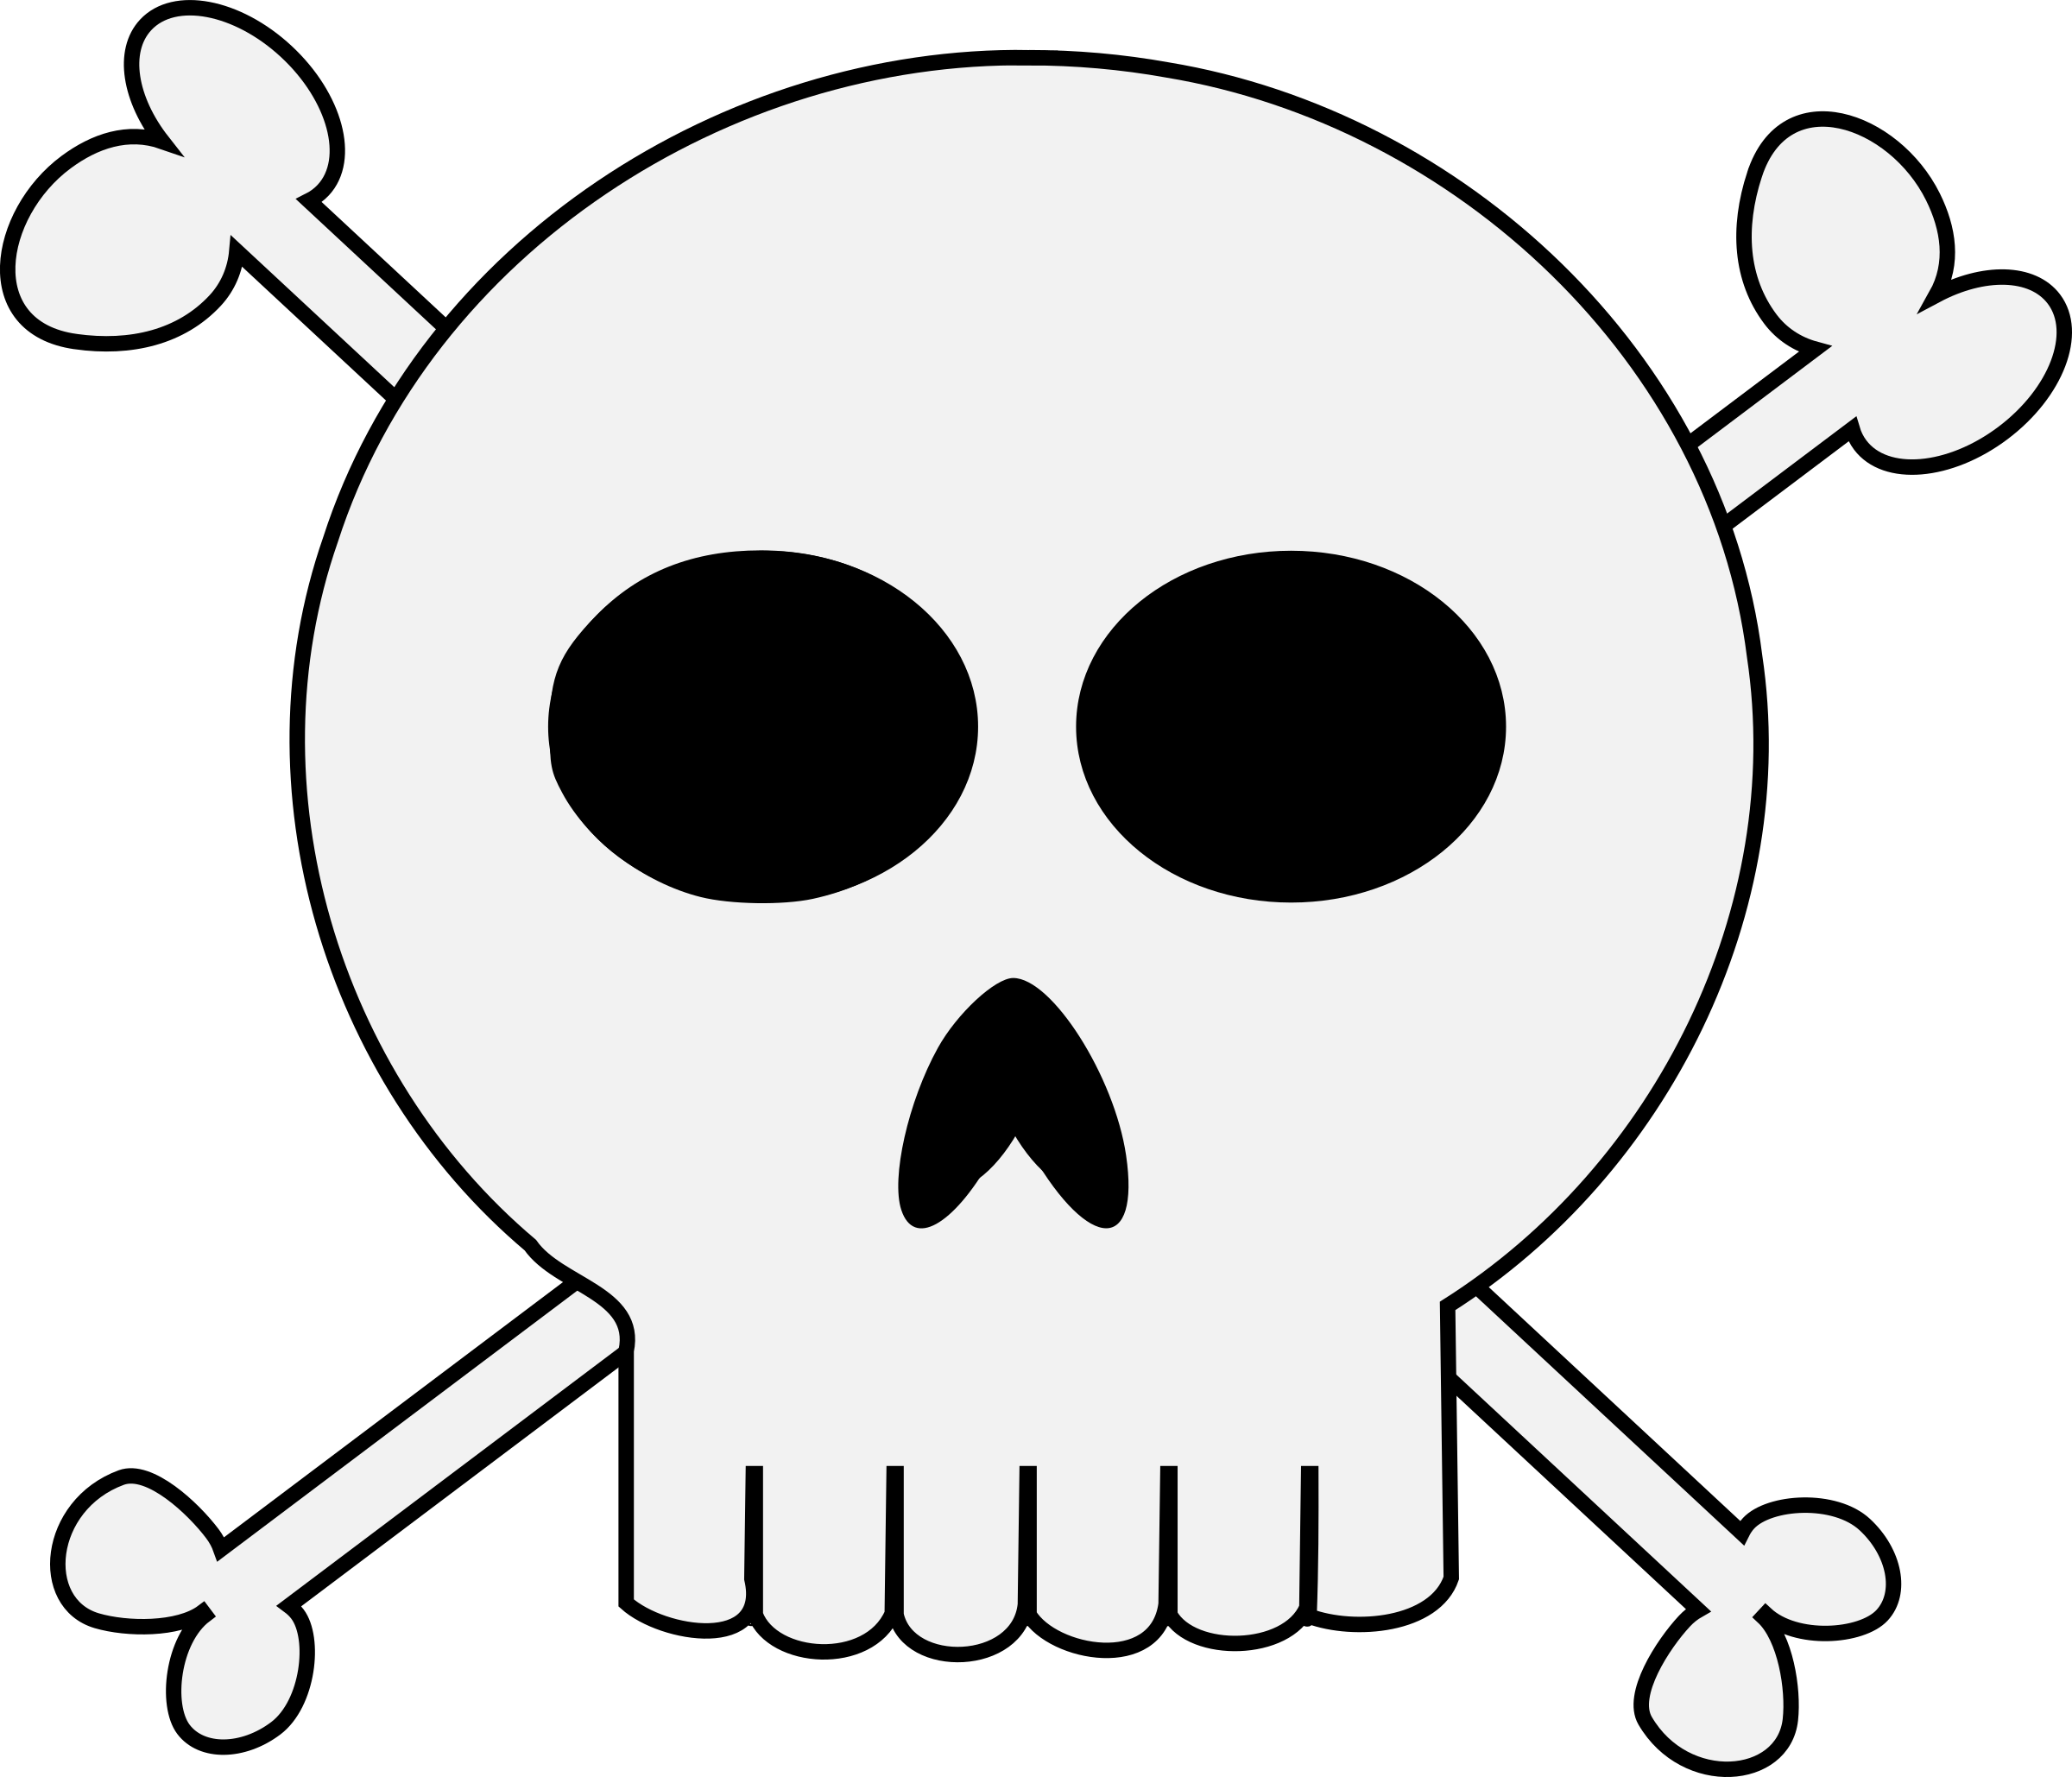 clipart punk skull crossbones rh openclipart org skull and crossbones clip art skull and crossbones clip art vector